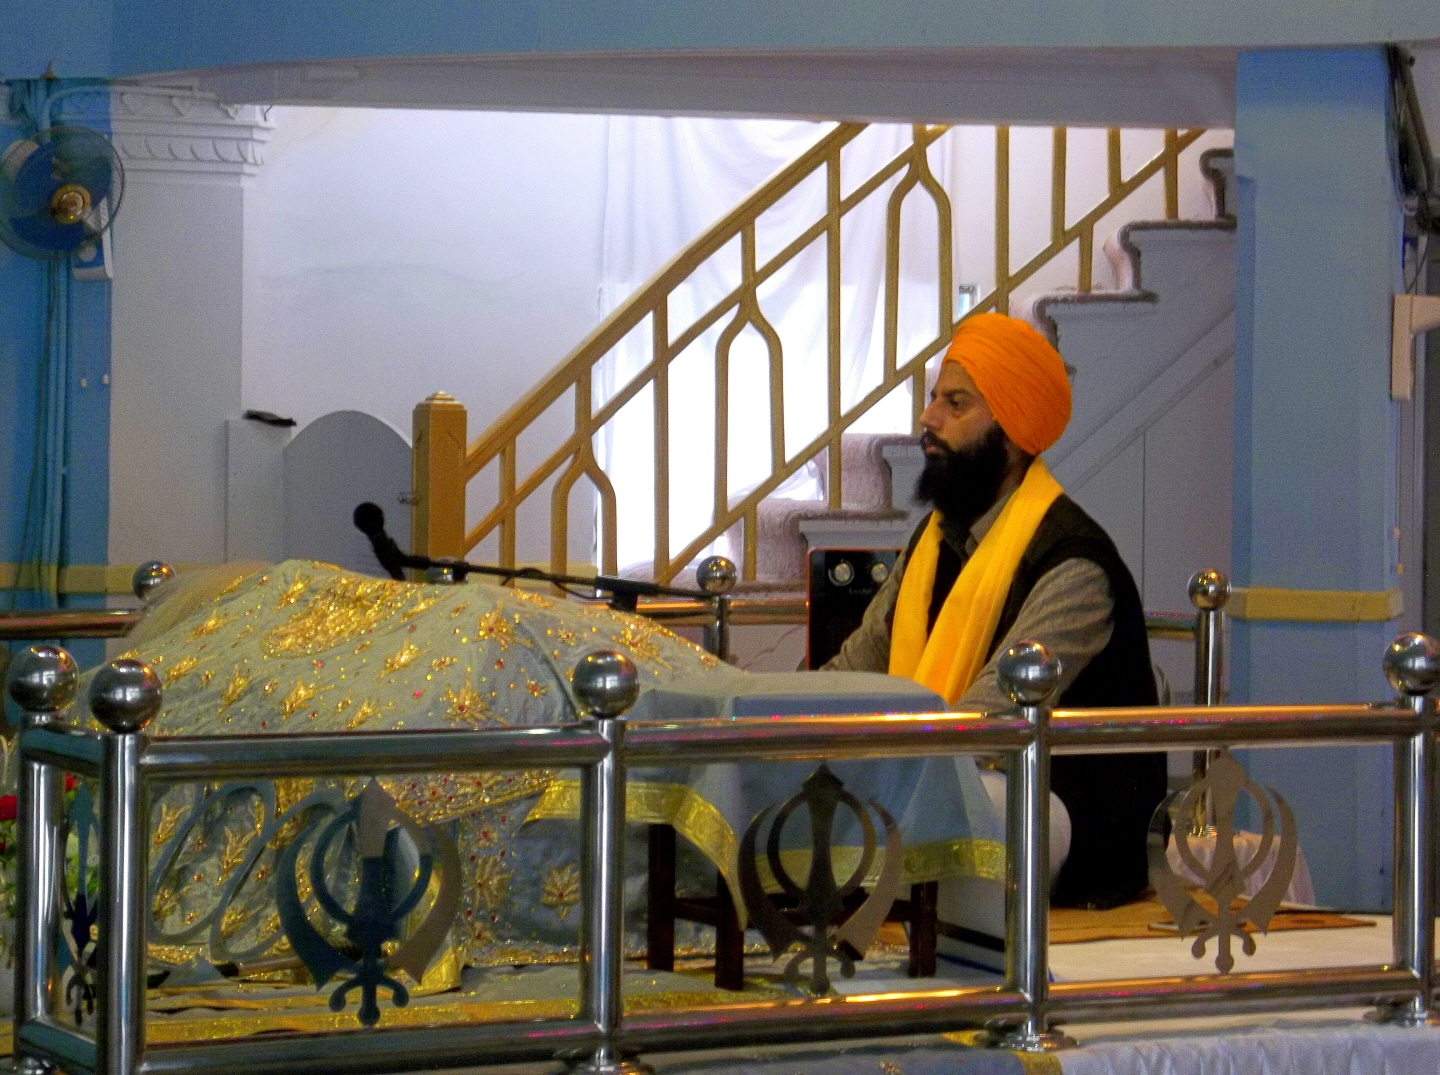 Sikh Pothi Sahib (custodian) of the Granth Sahib (Holy Book) - in the (Gurdwara) - Sikh Temple - Hong Kong